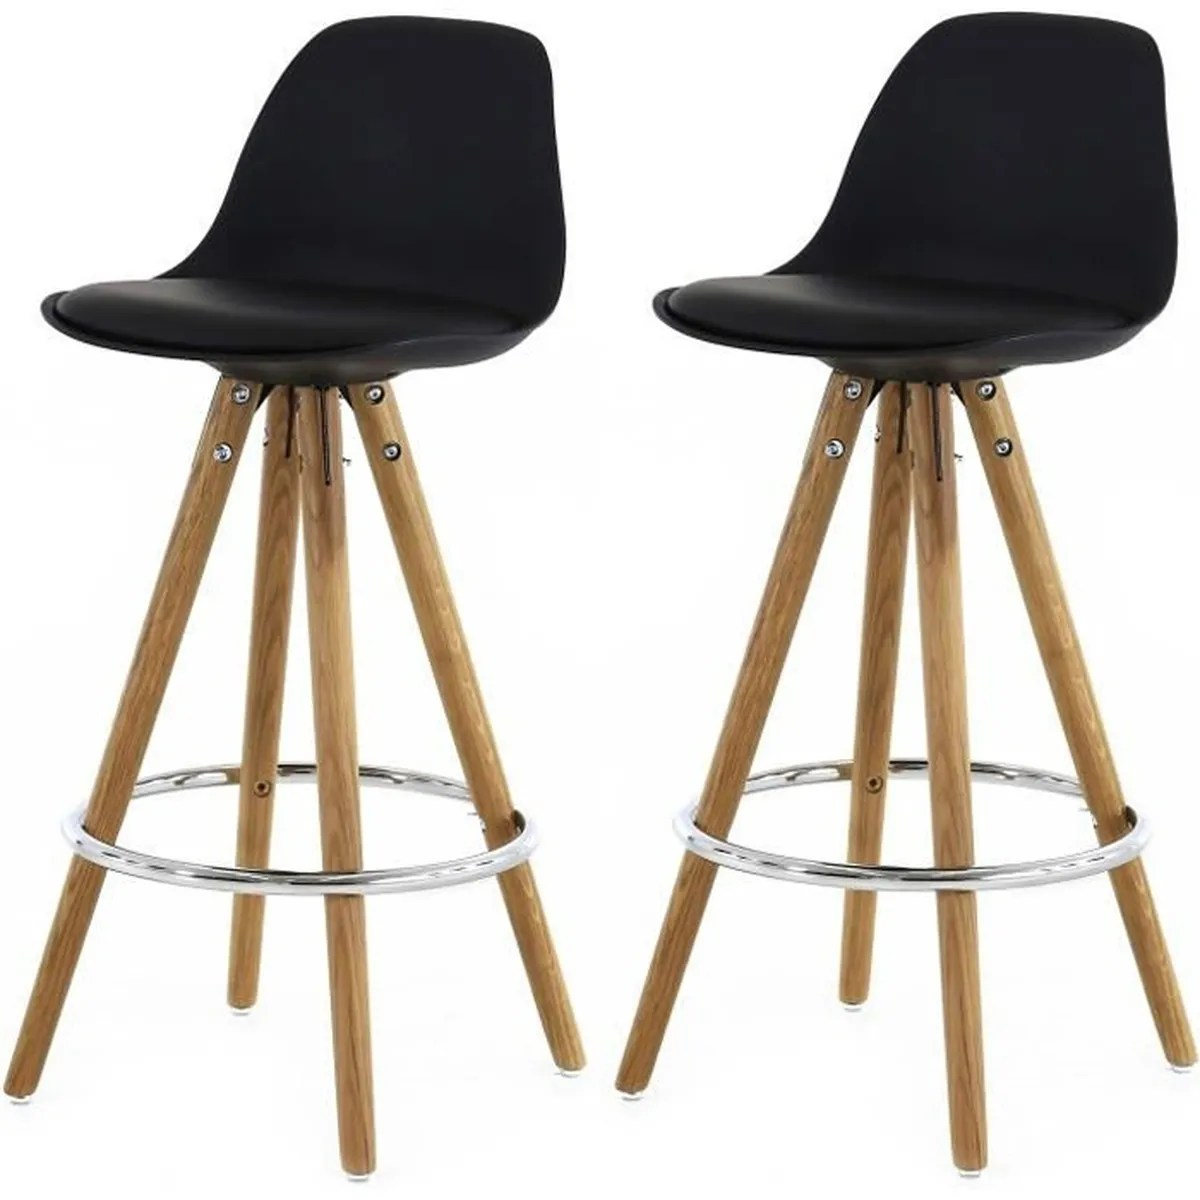 Charly Lot De 2 Tabourets De Bar Blancs Lot De 2 Tabourets De Bar Scandinaves Noir Uma Achat